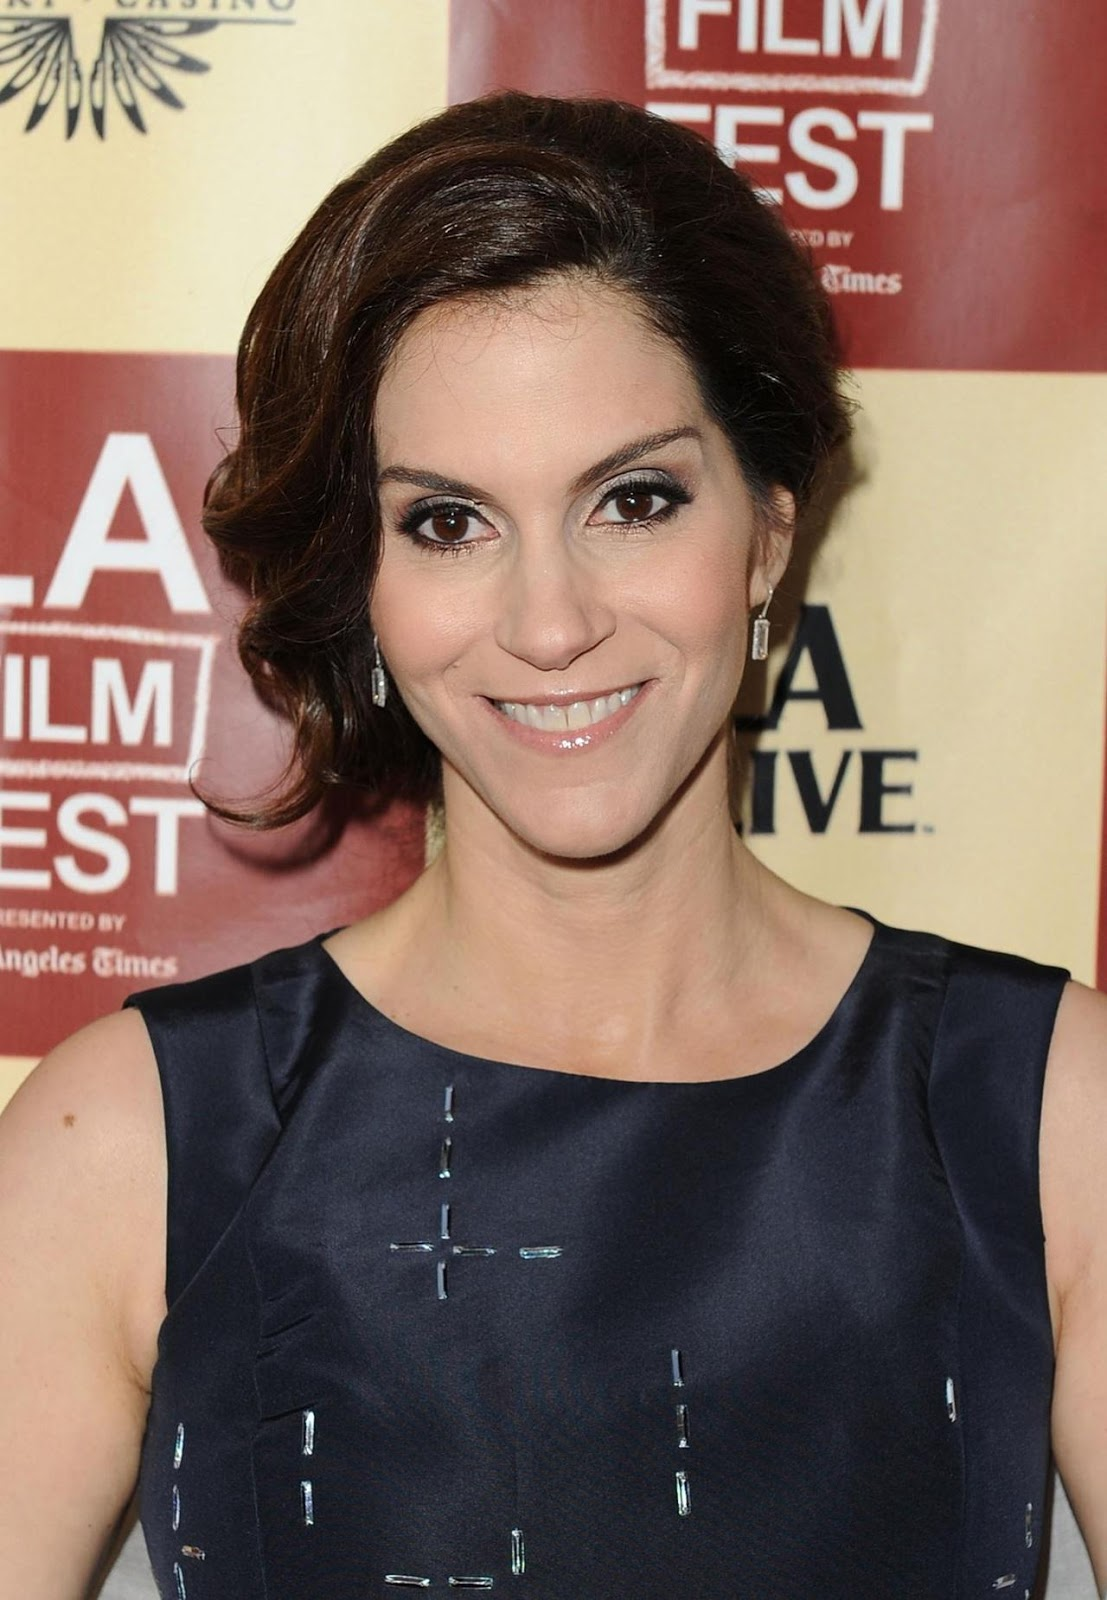 ALL HOLLYWOOD CELEBRITIES: Jami Gertz Most Hot Looking ...